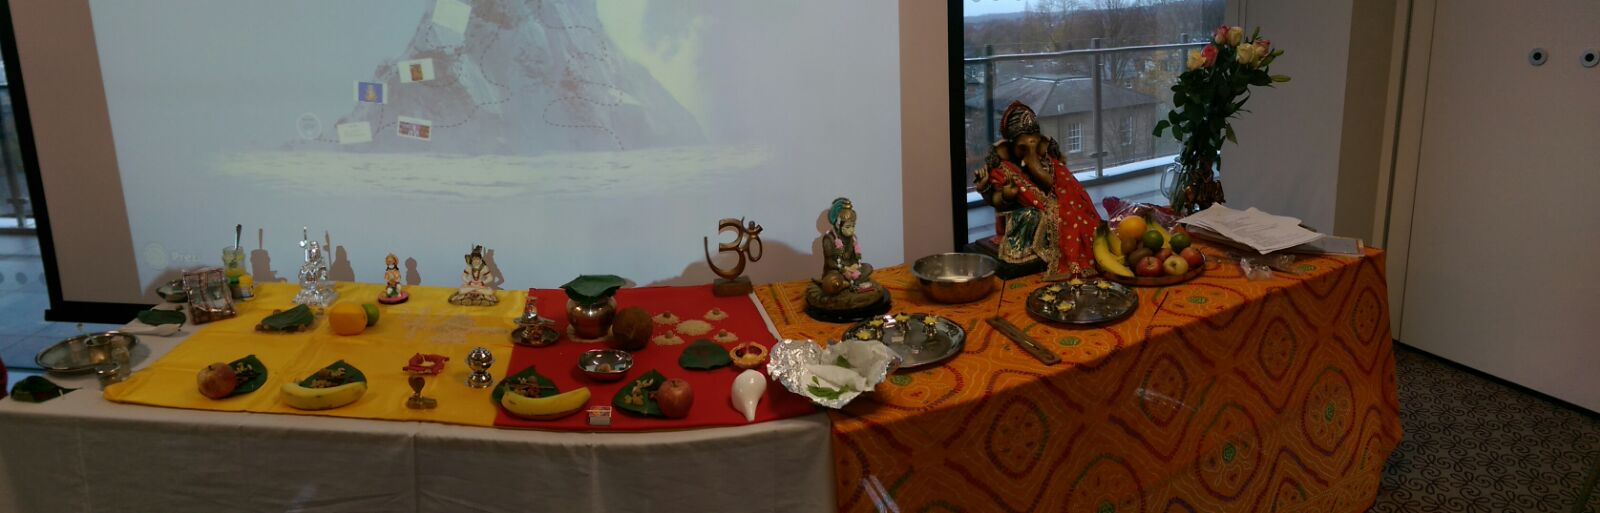 NHSF Sheffield's Shiva Puja for Hindu Awareness Week